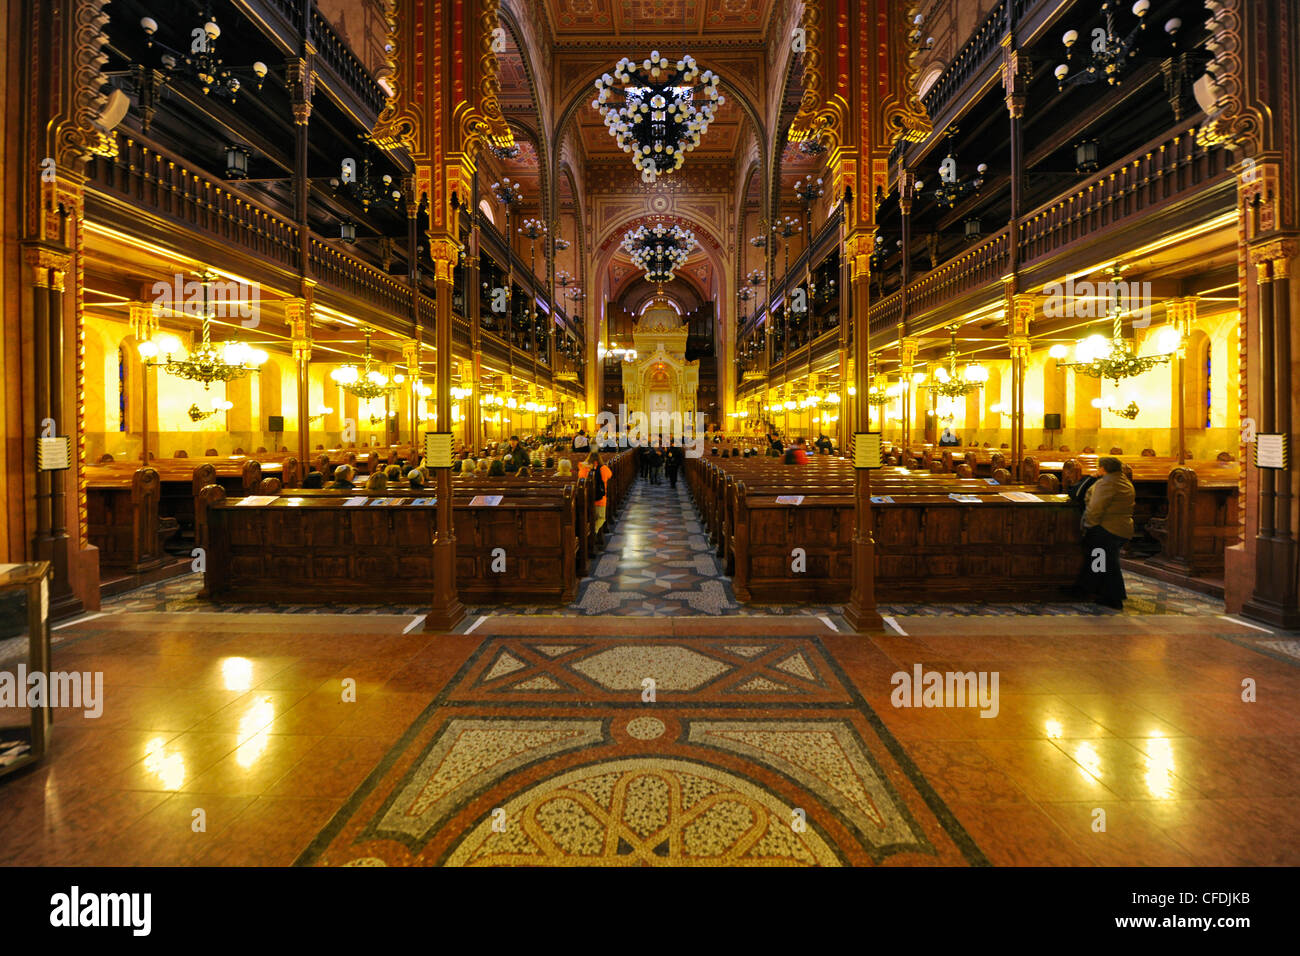 Interior view of the synagogue, Budapest, Hungary, Europe - Stock Image